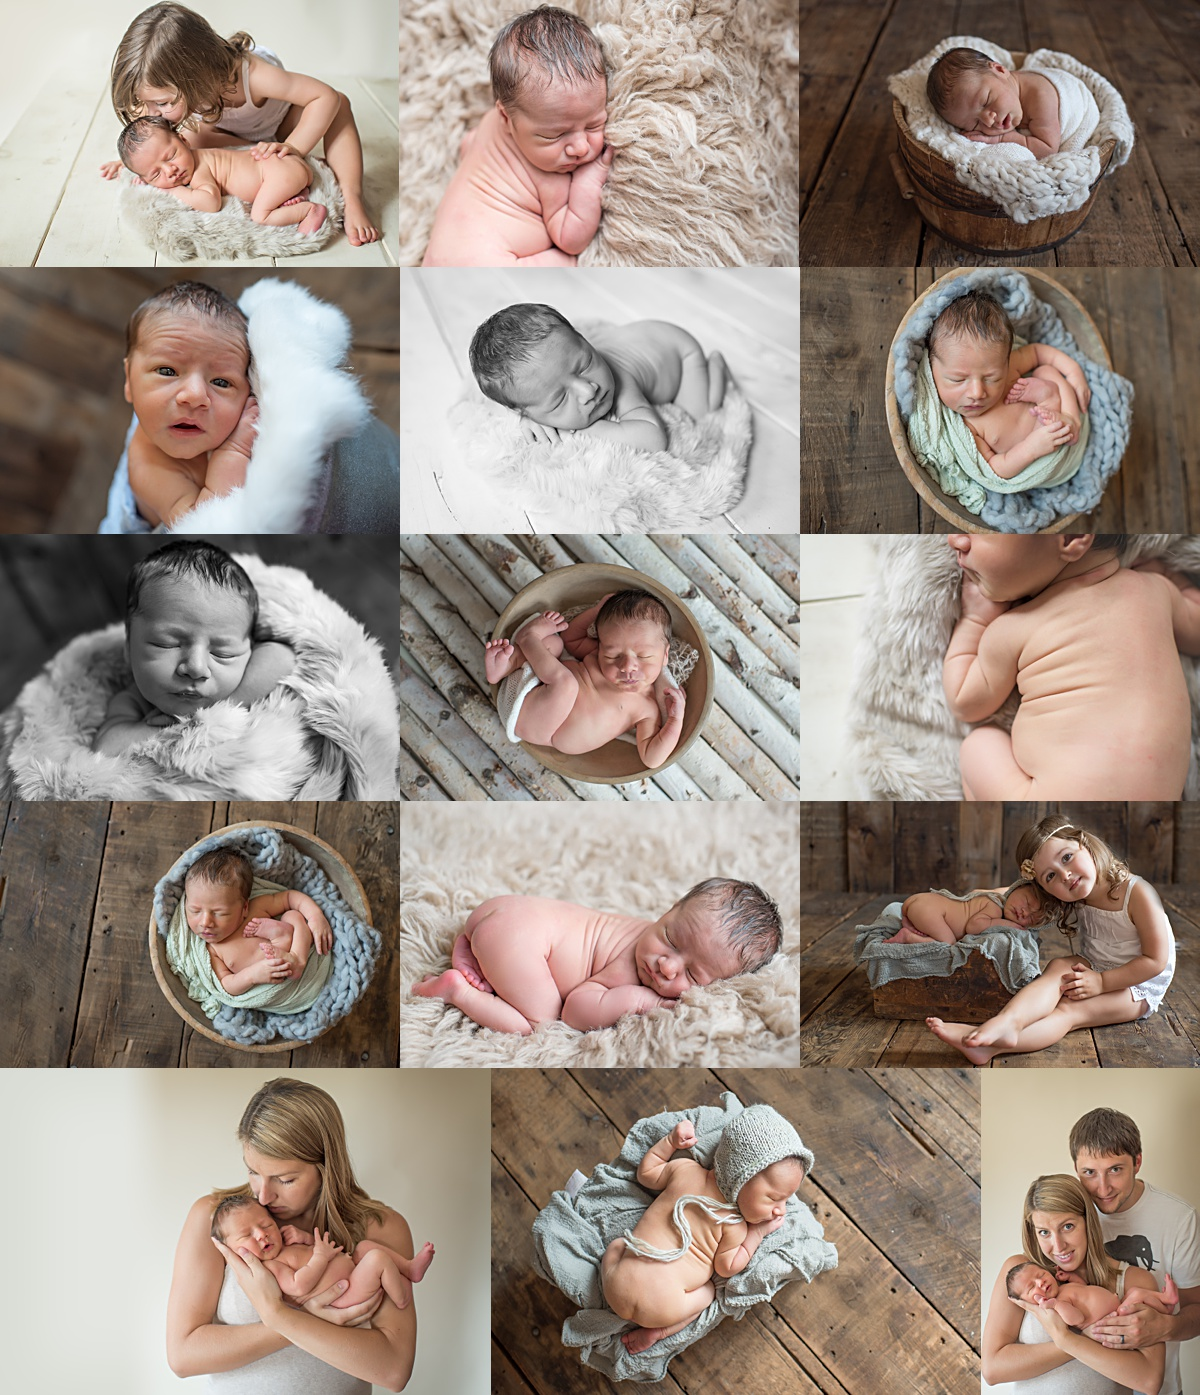 Best Infant Photographer Pittsburgh PA. Baby photographer Jules Bradley is Pittsburgh